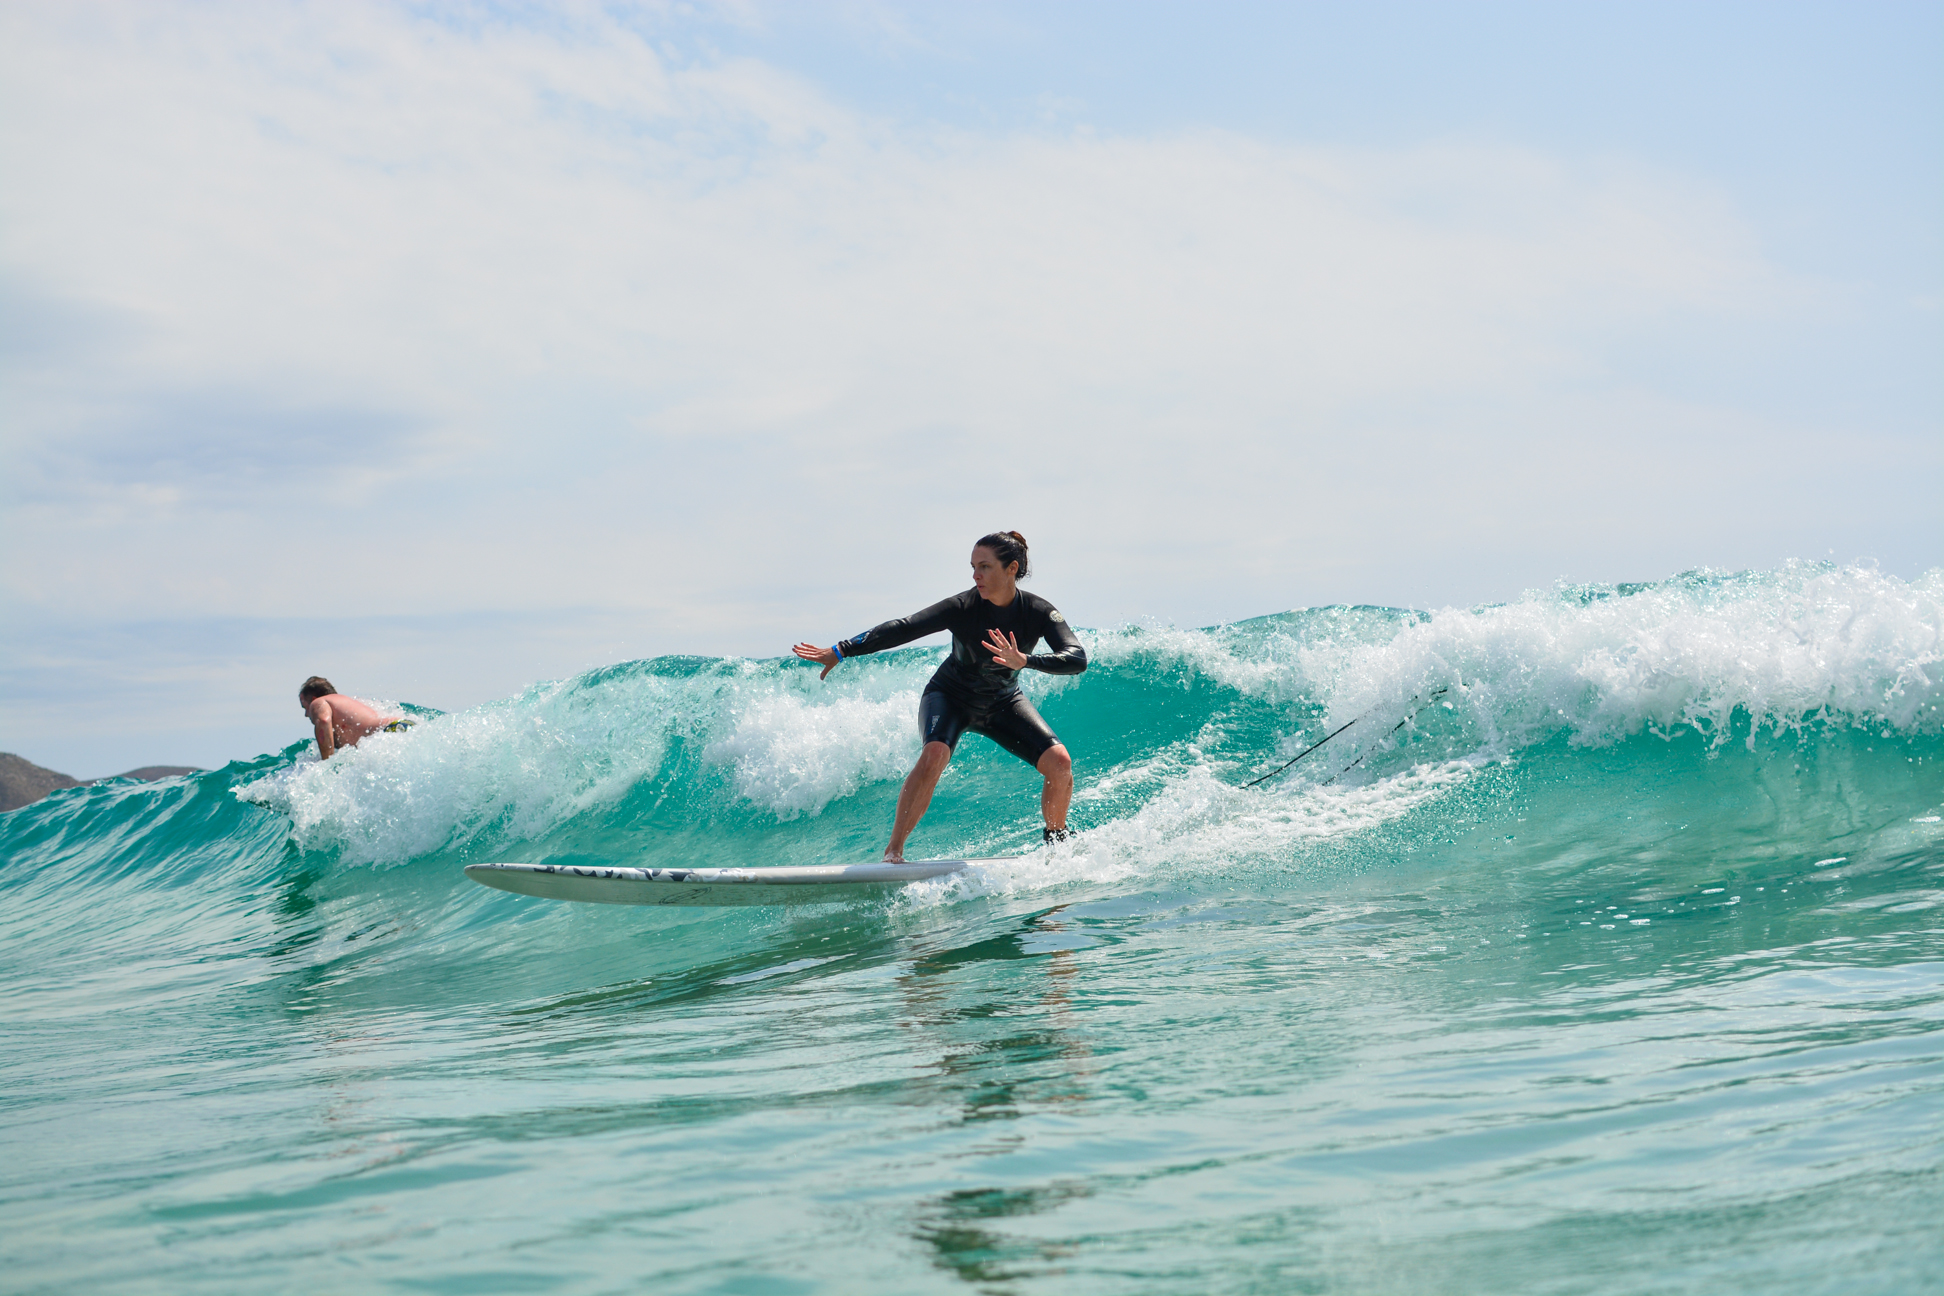 Private Surfing Lessons at Cerritos (winter): Learn to surf in Mexico